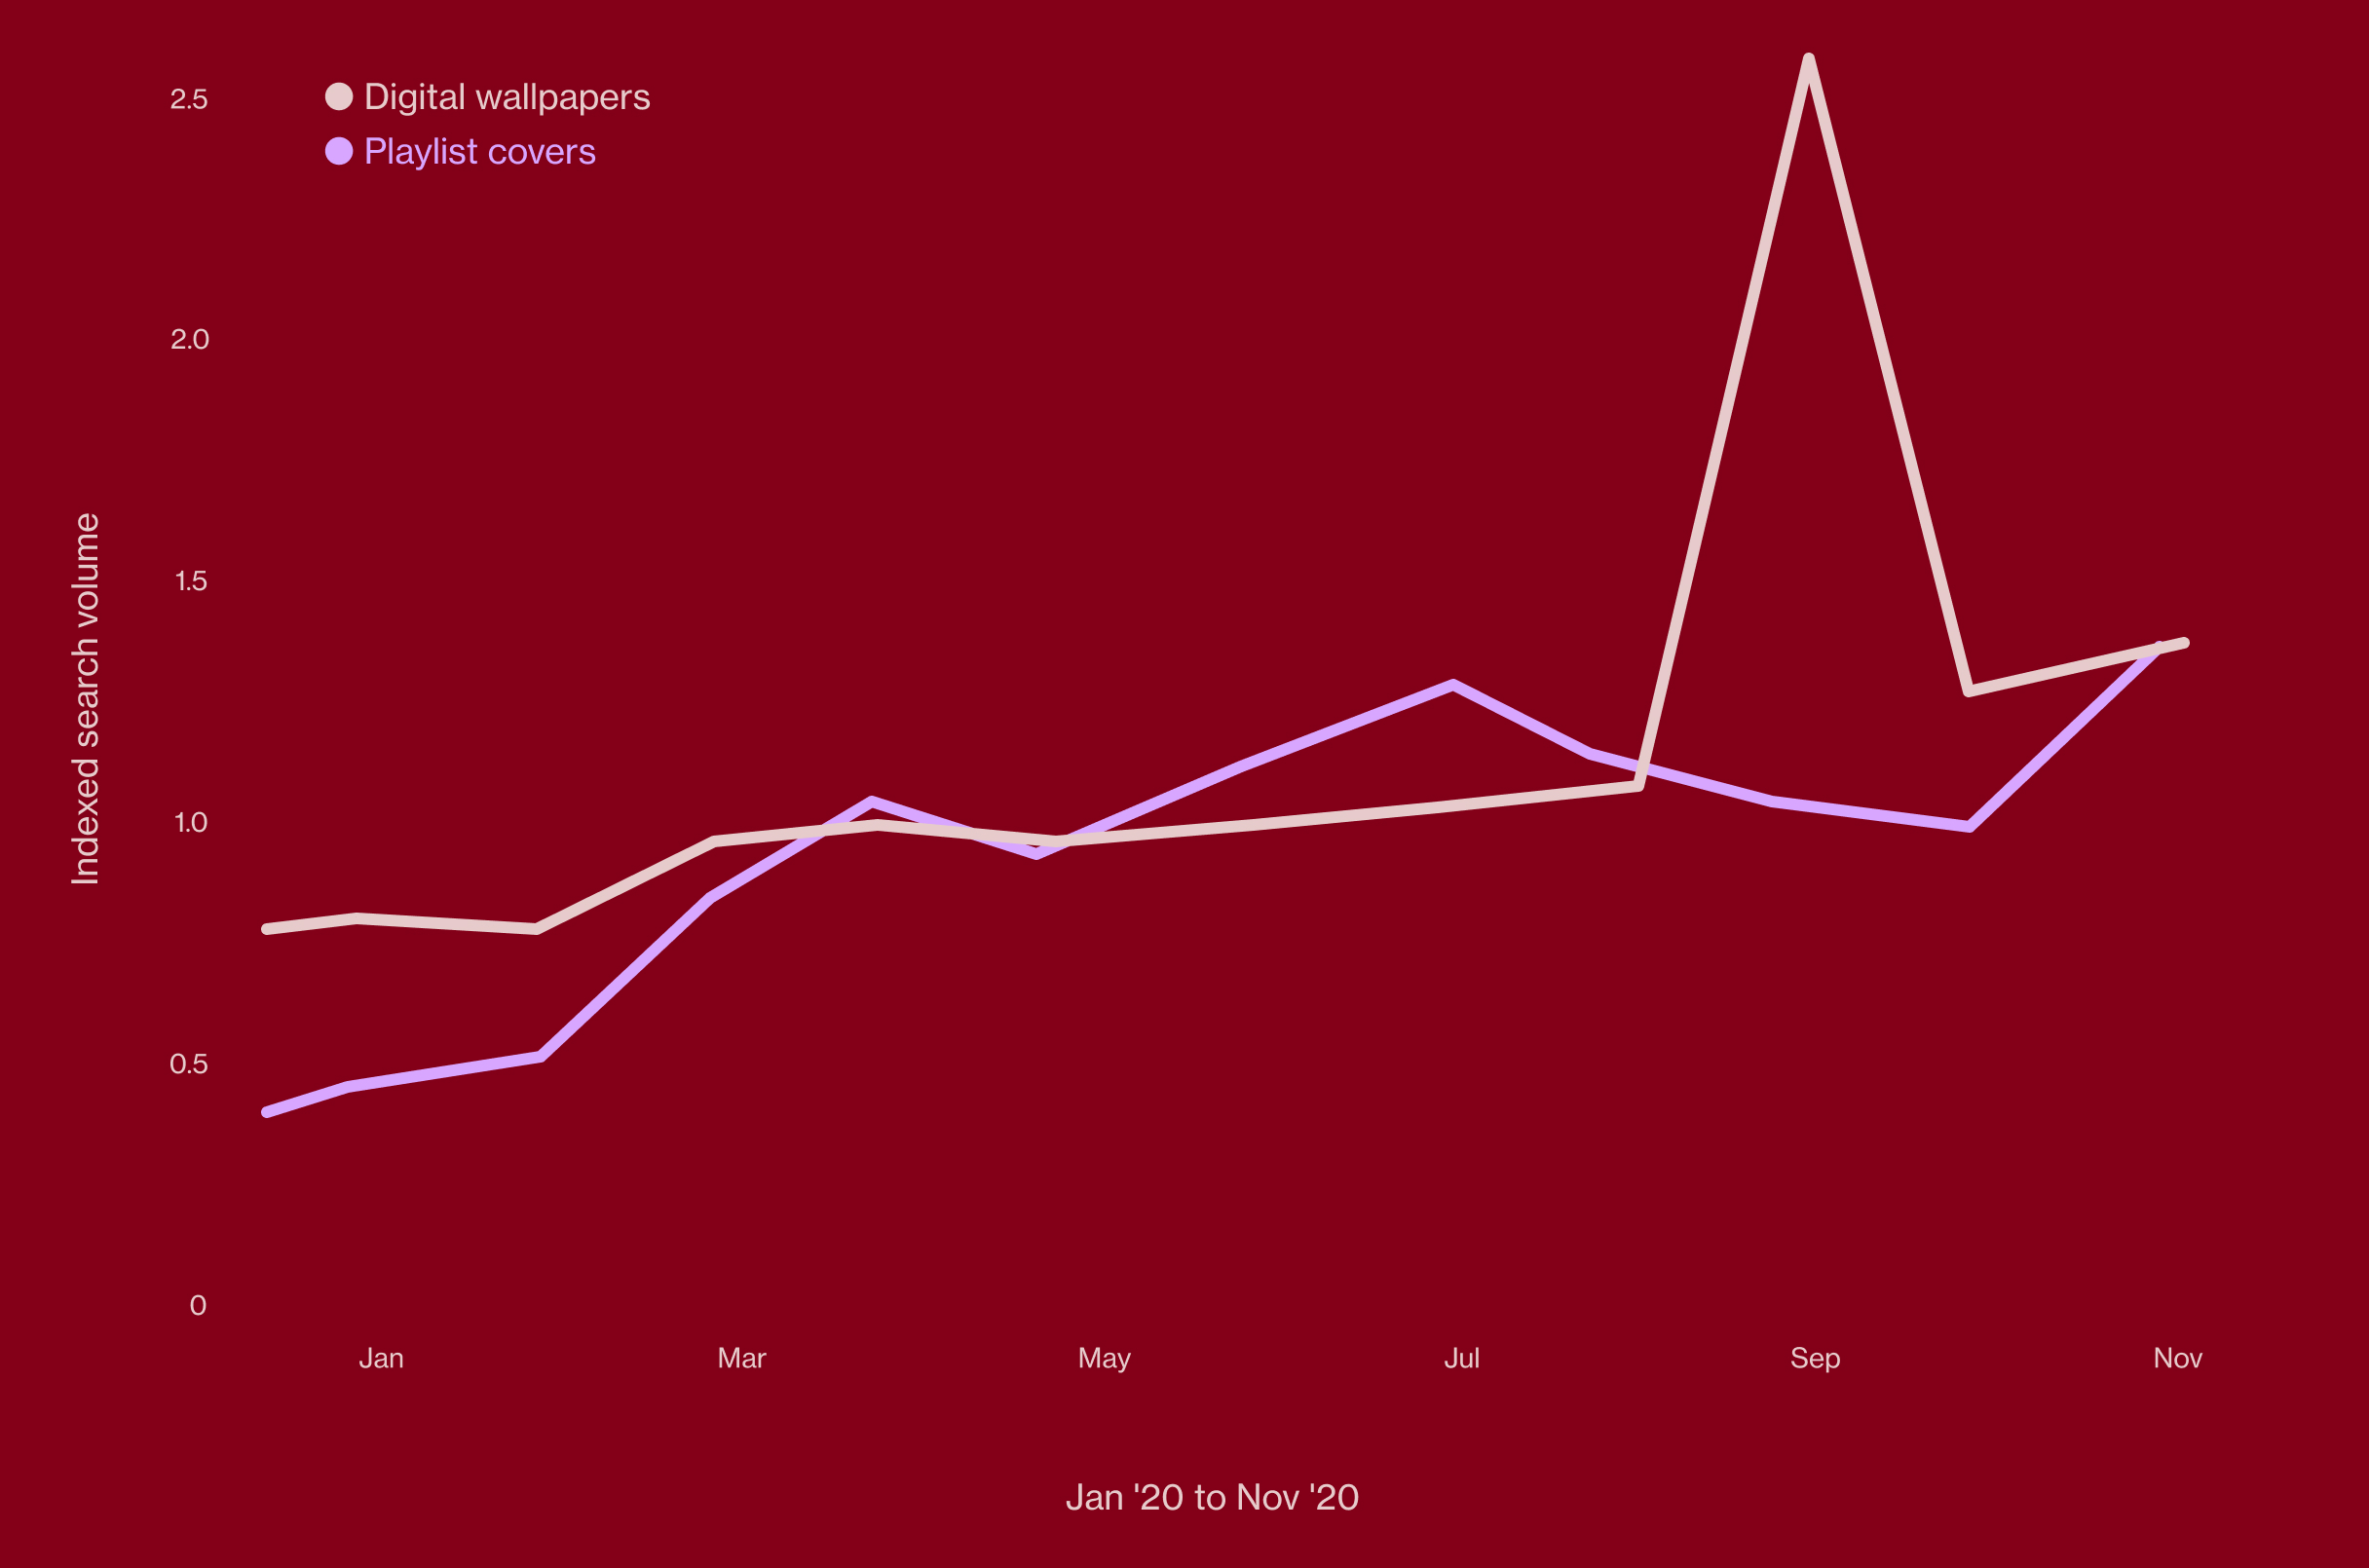 Line graph of indexed searches for digital decor from January 2020 to November 2020 against a red background